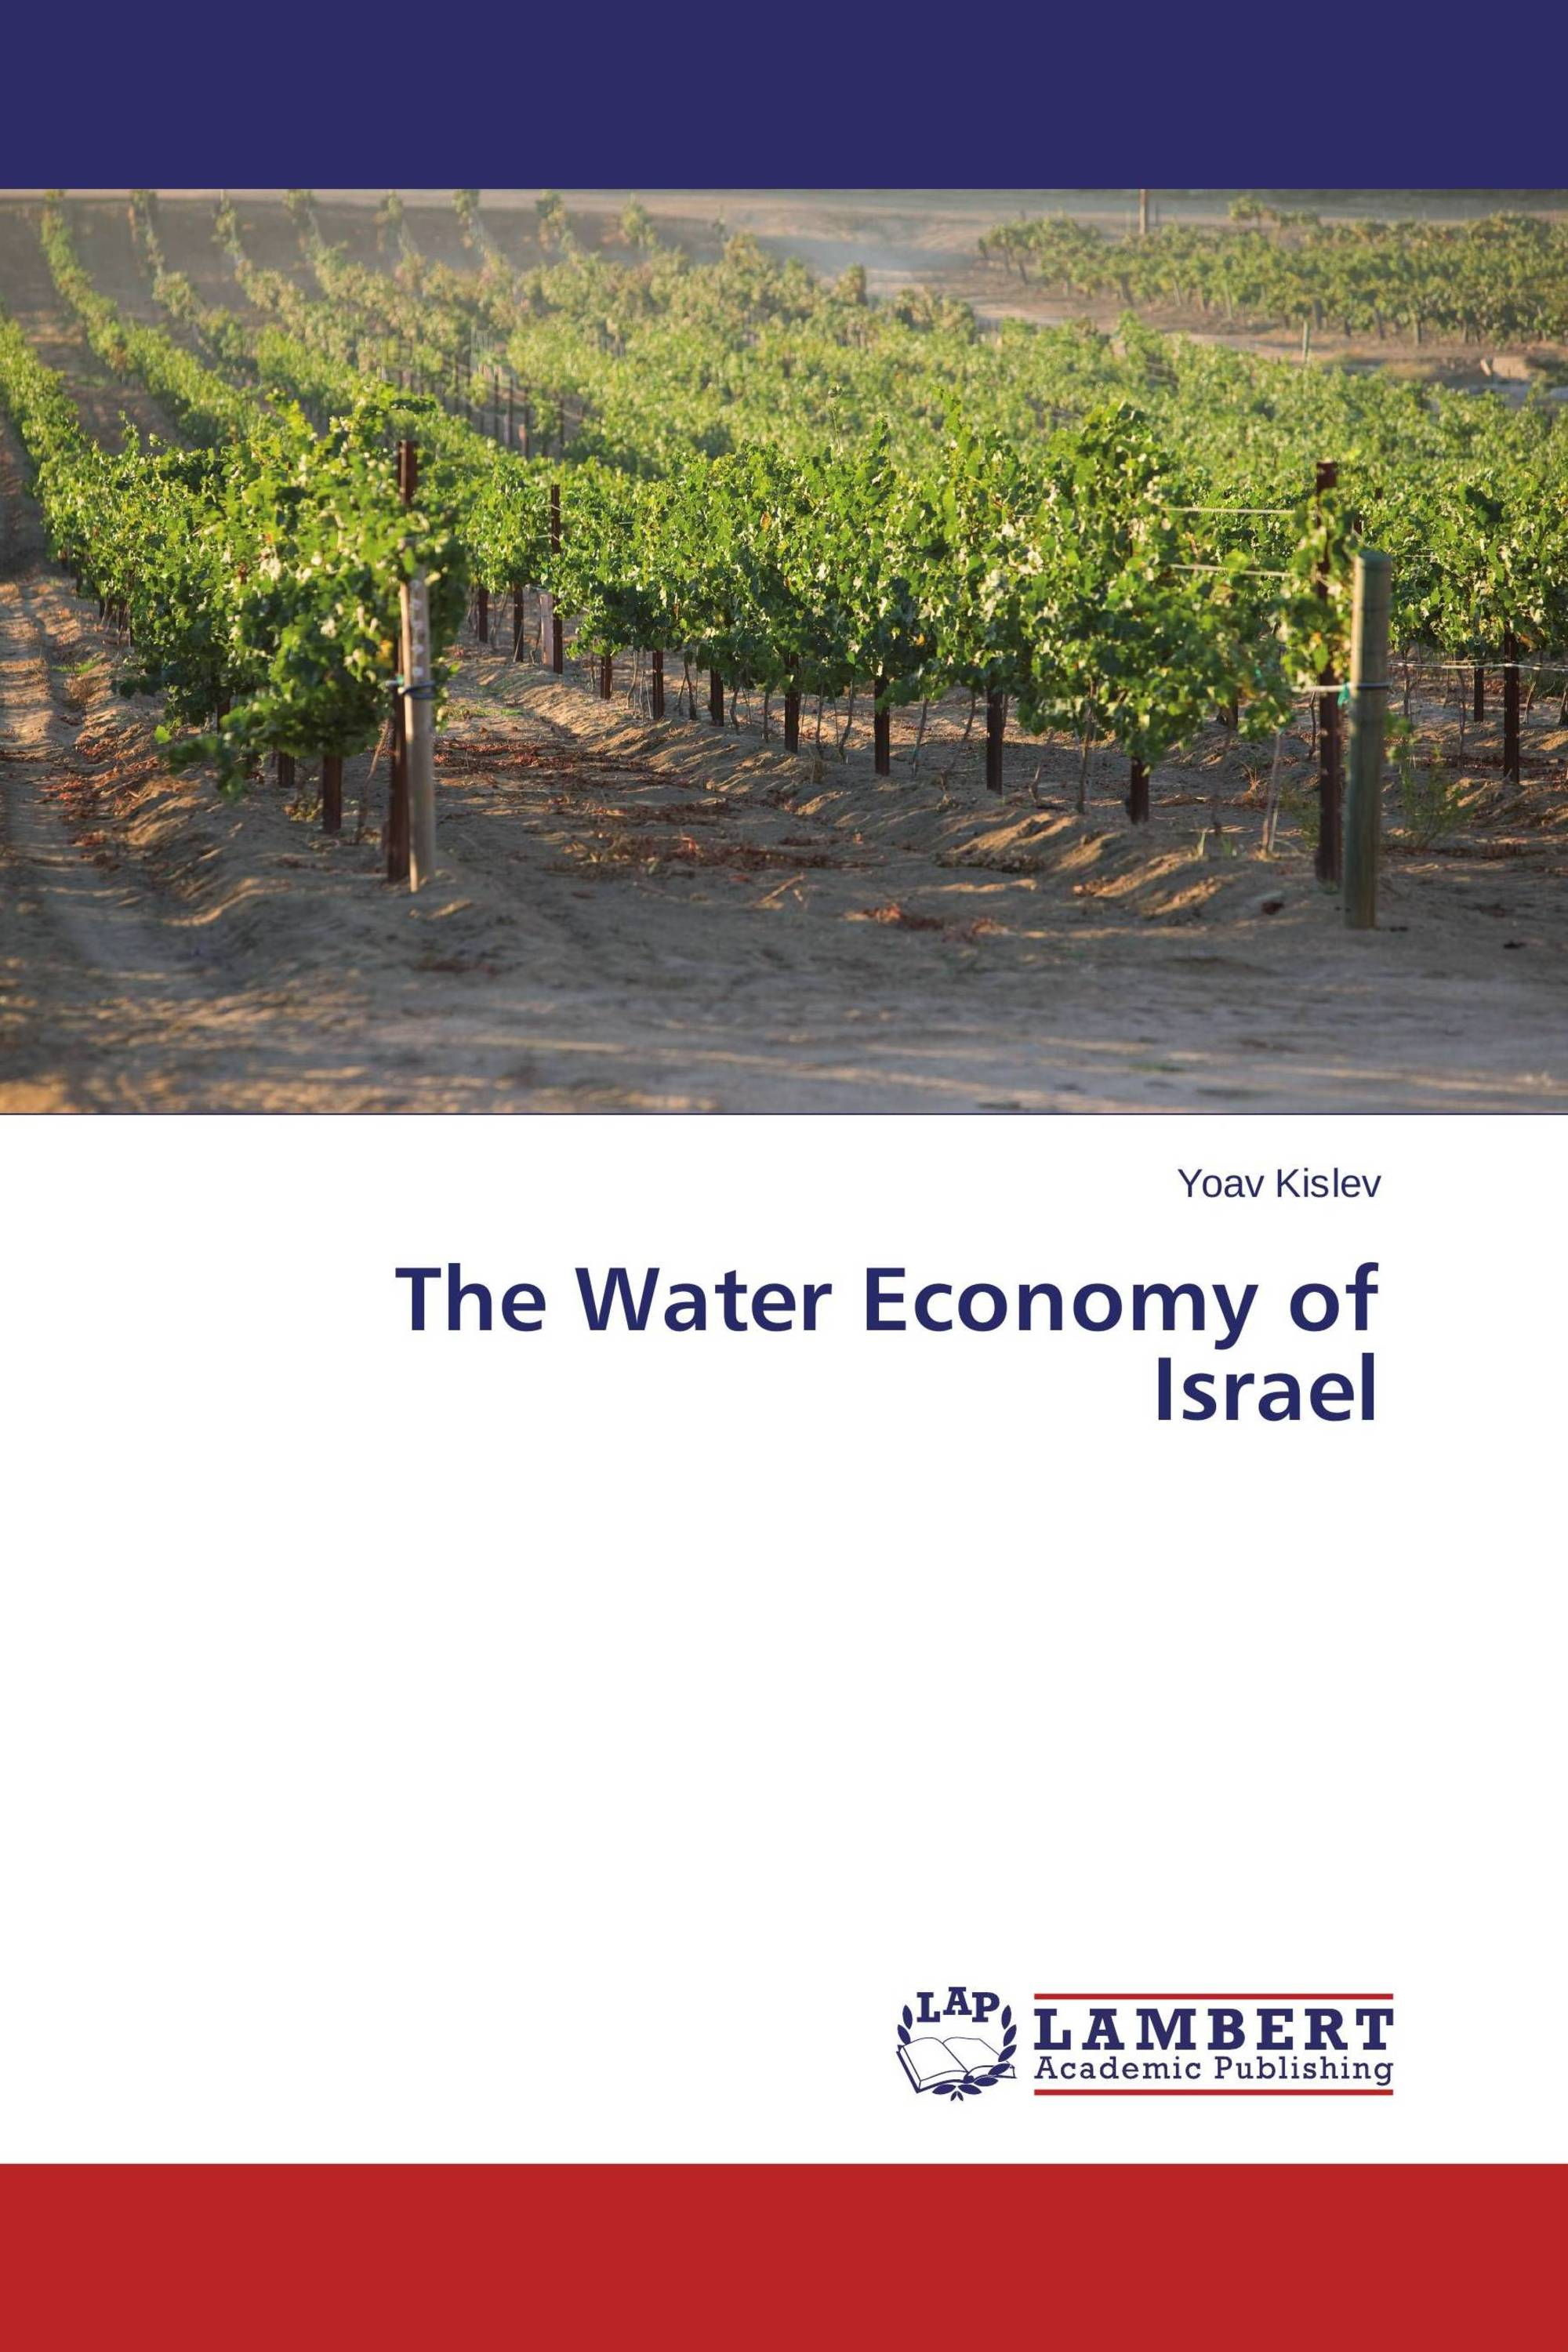 The Water Economy of Israel